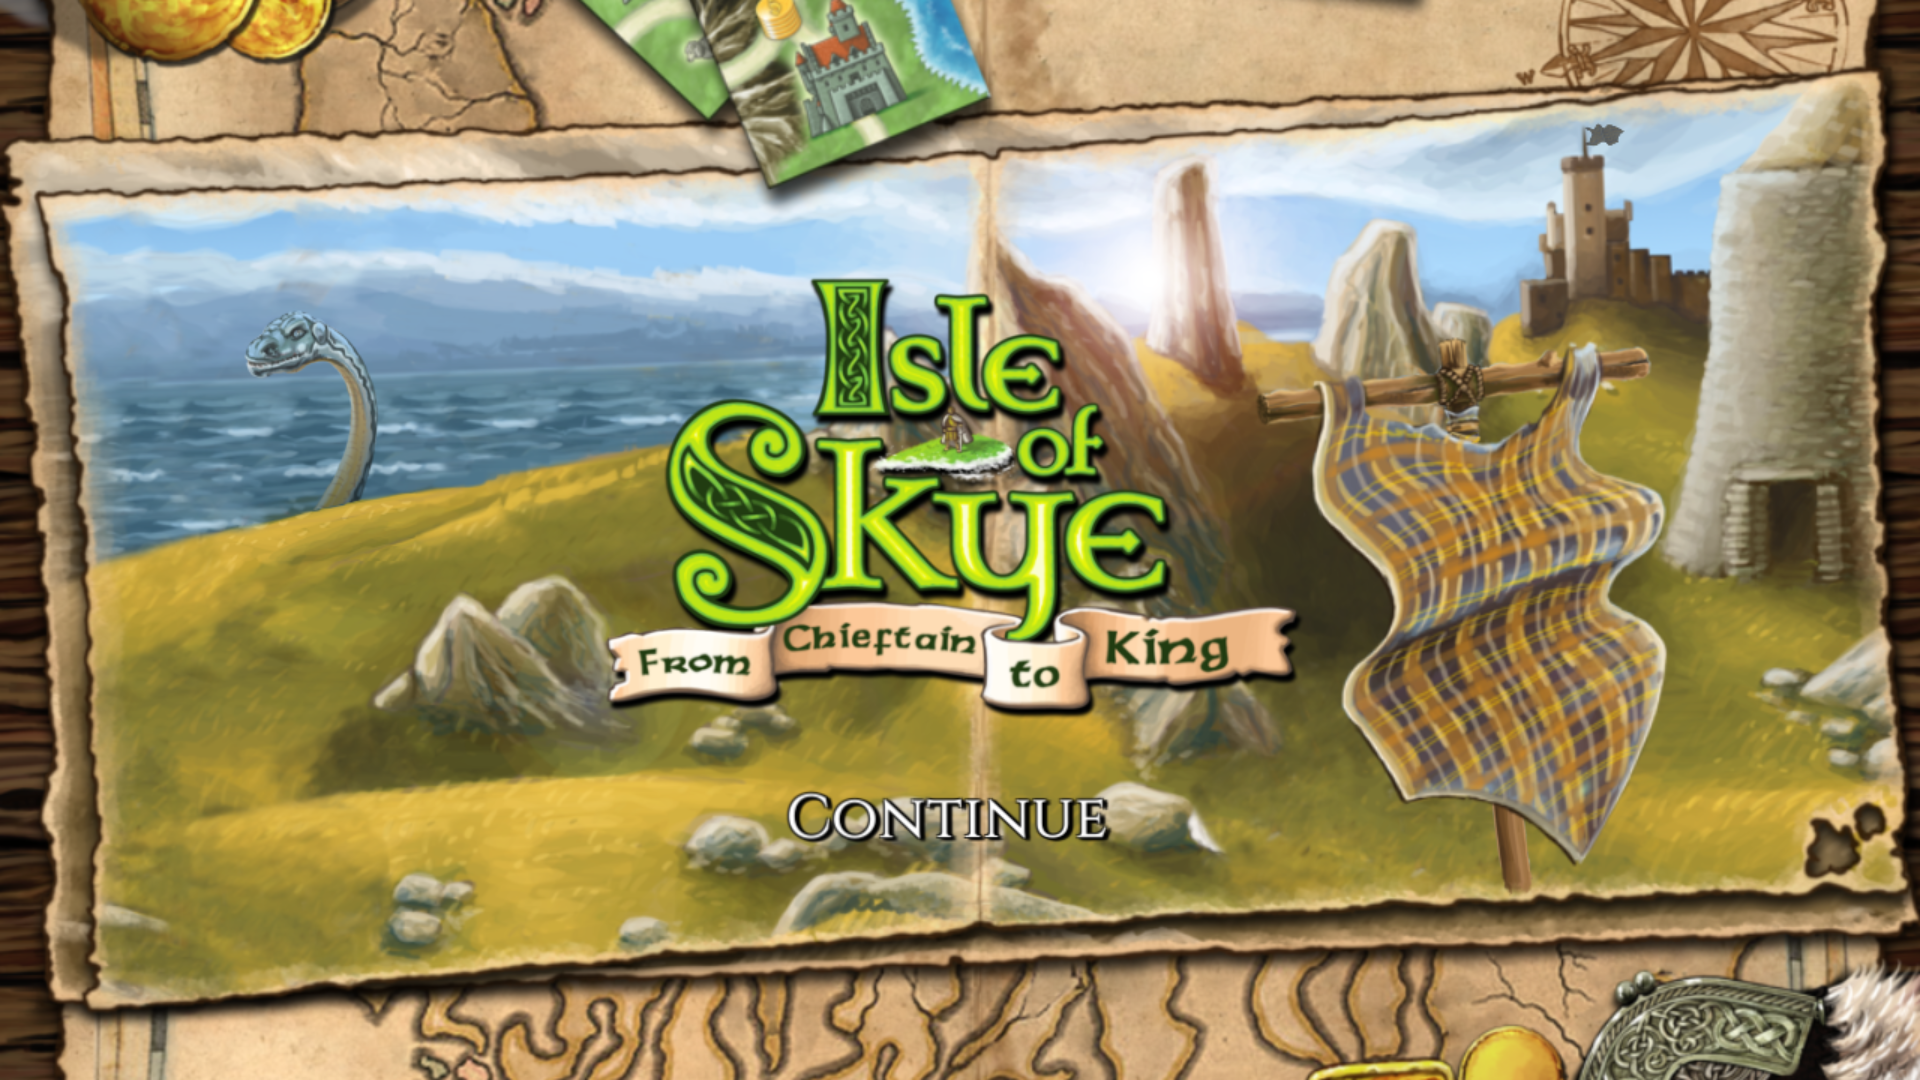 Isle of Skye Splashscreen (2-5 player strategy game)